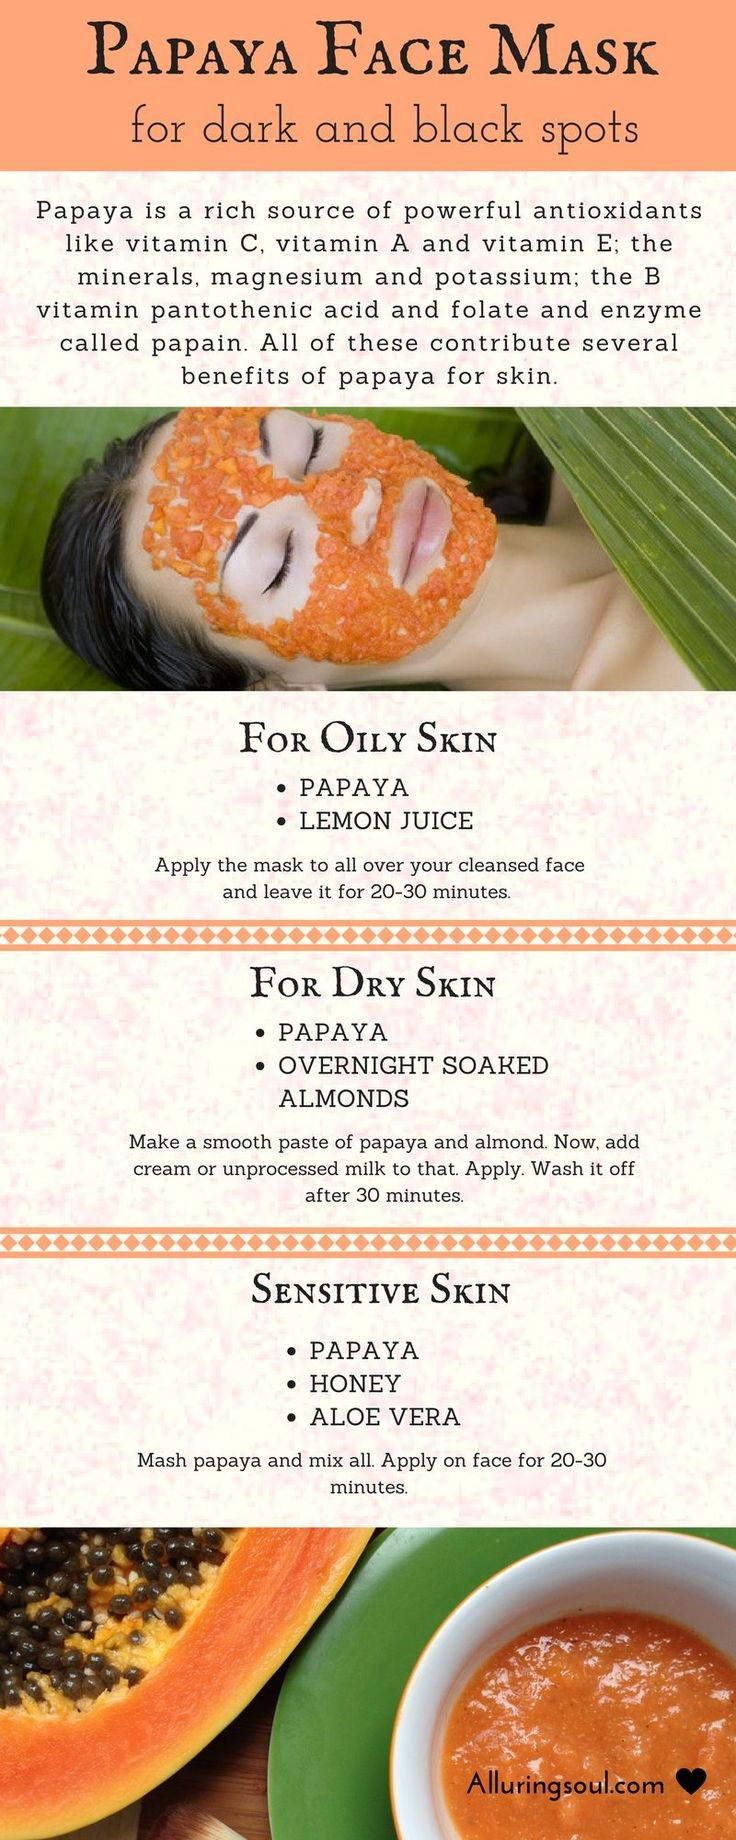 papaya skin Papaya is best known for brightening and whitening skin, because it is rich in papain, a powerful enzyme these recipes contain other natural ingredients to make effective papaya face masks.